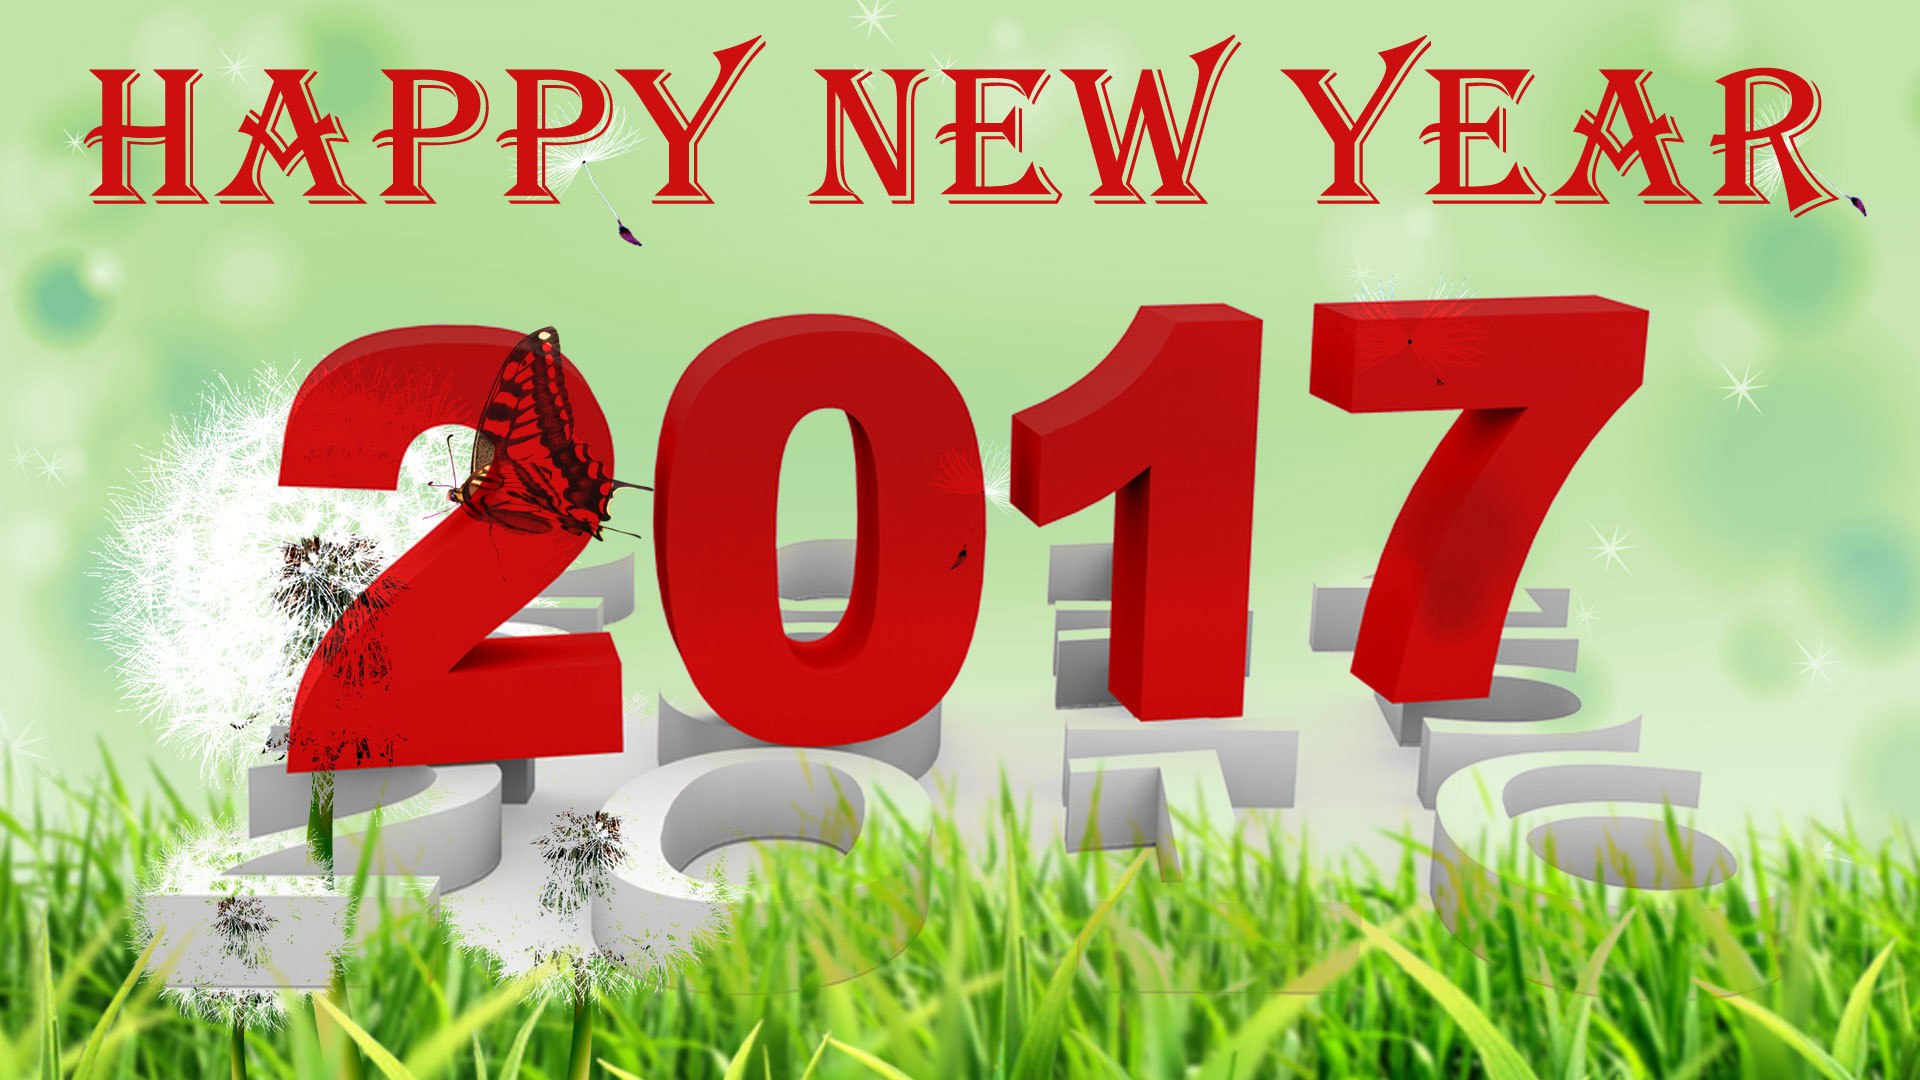 cool collections ofhappy new year wallpapers desktop background for desktop laptop and mobiles here you can download more than 5 million photography